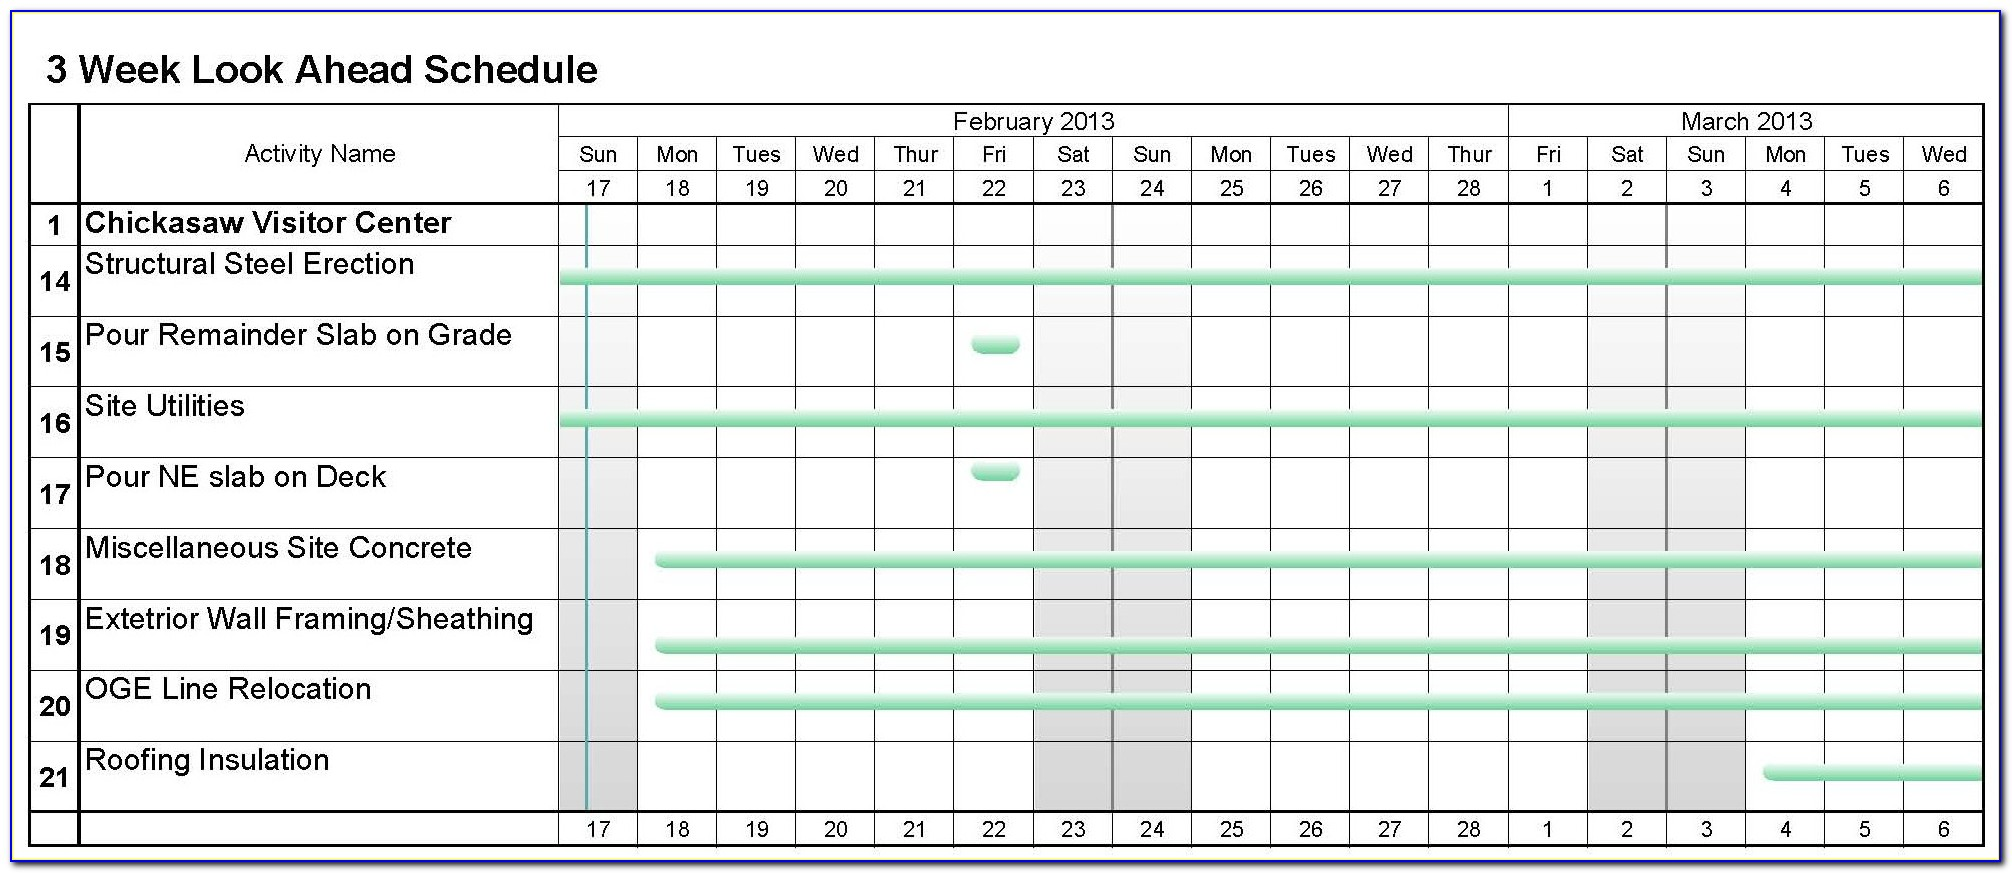 3 Week Look Ahead Construction Schedule Template Excel